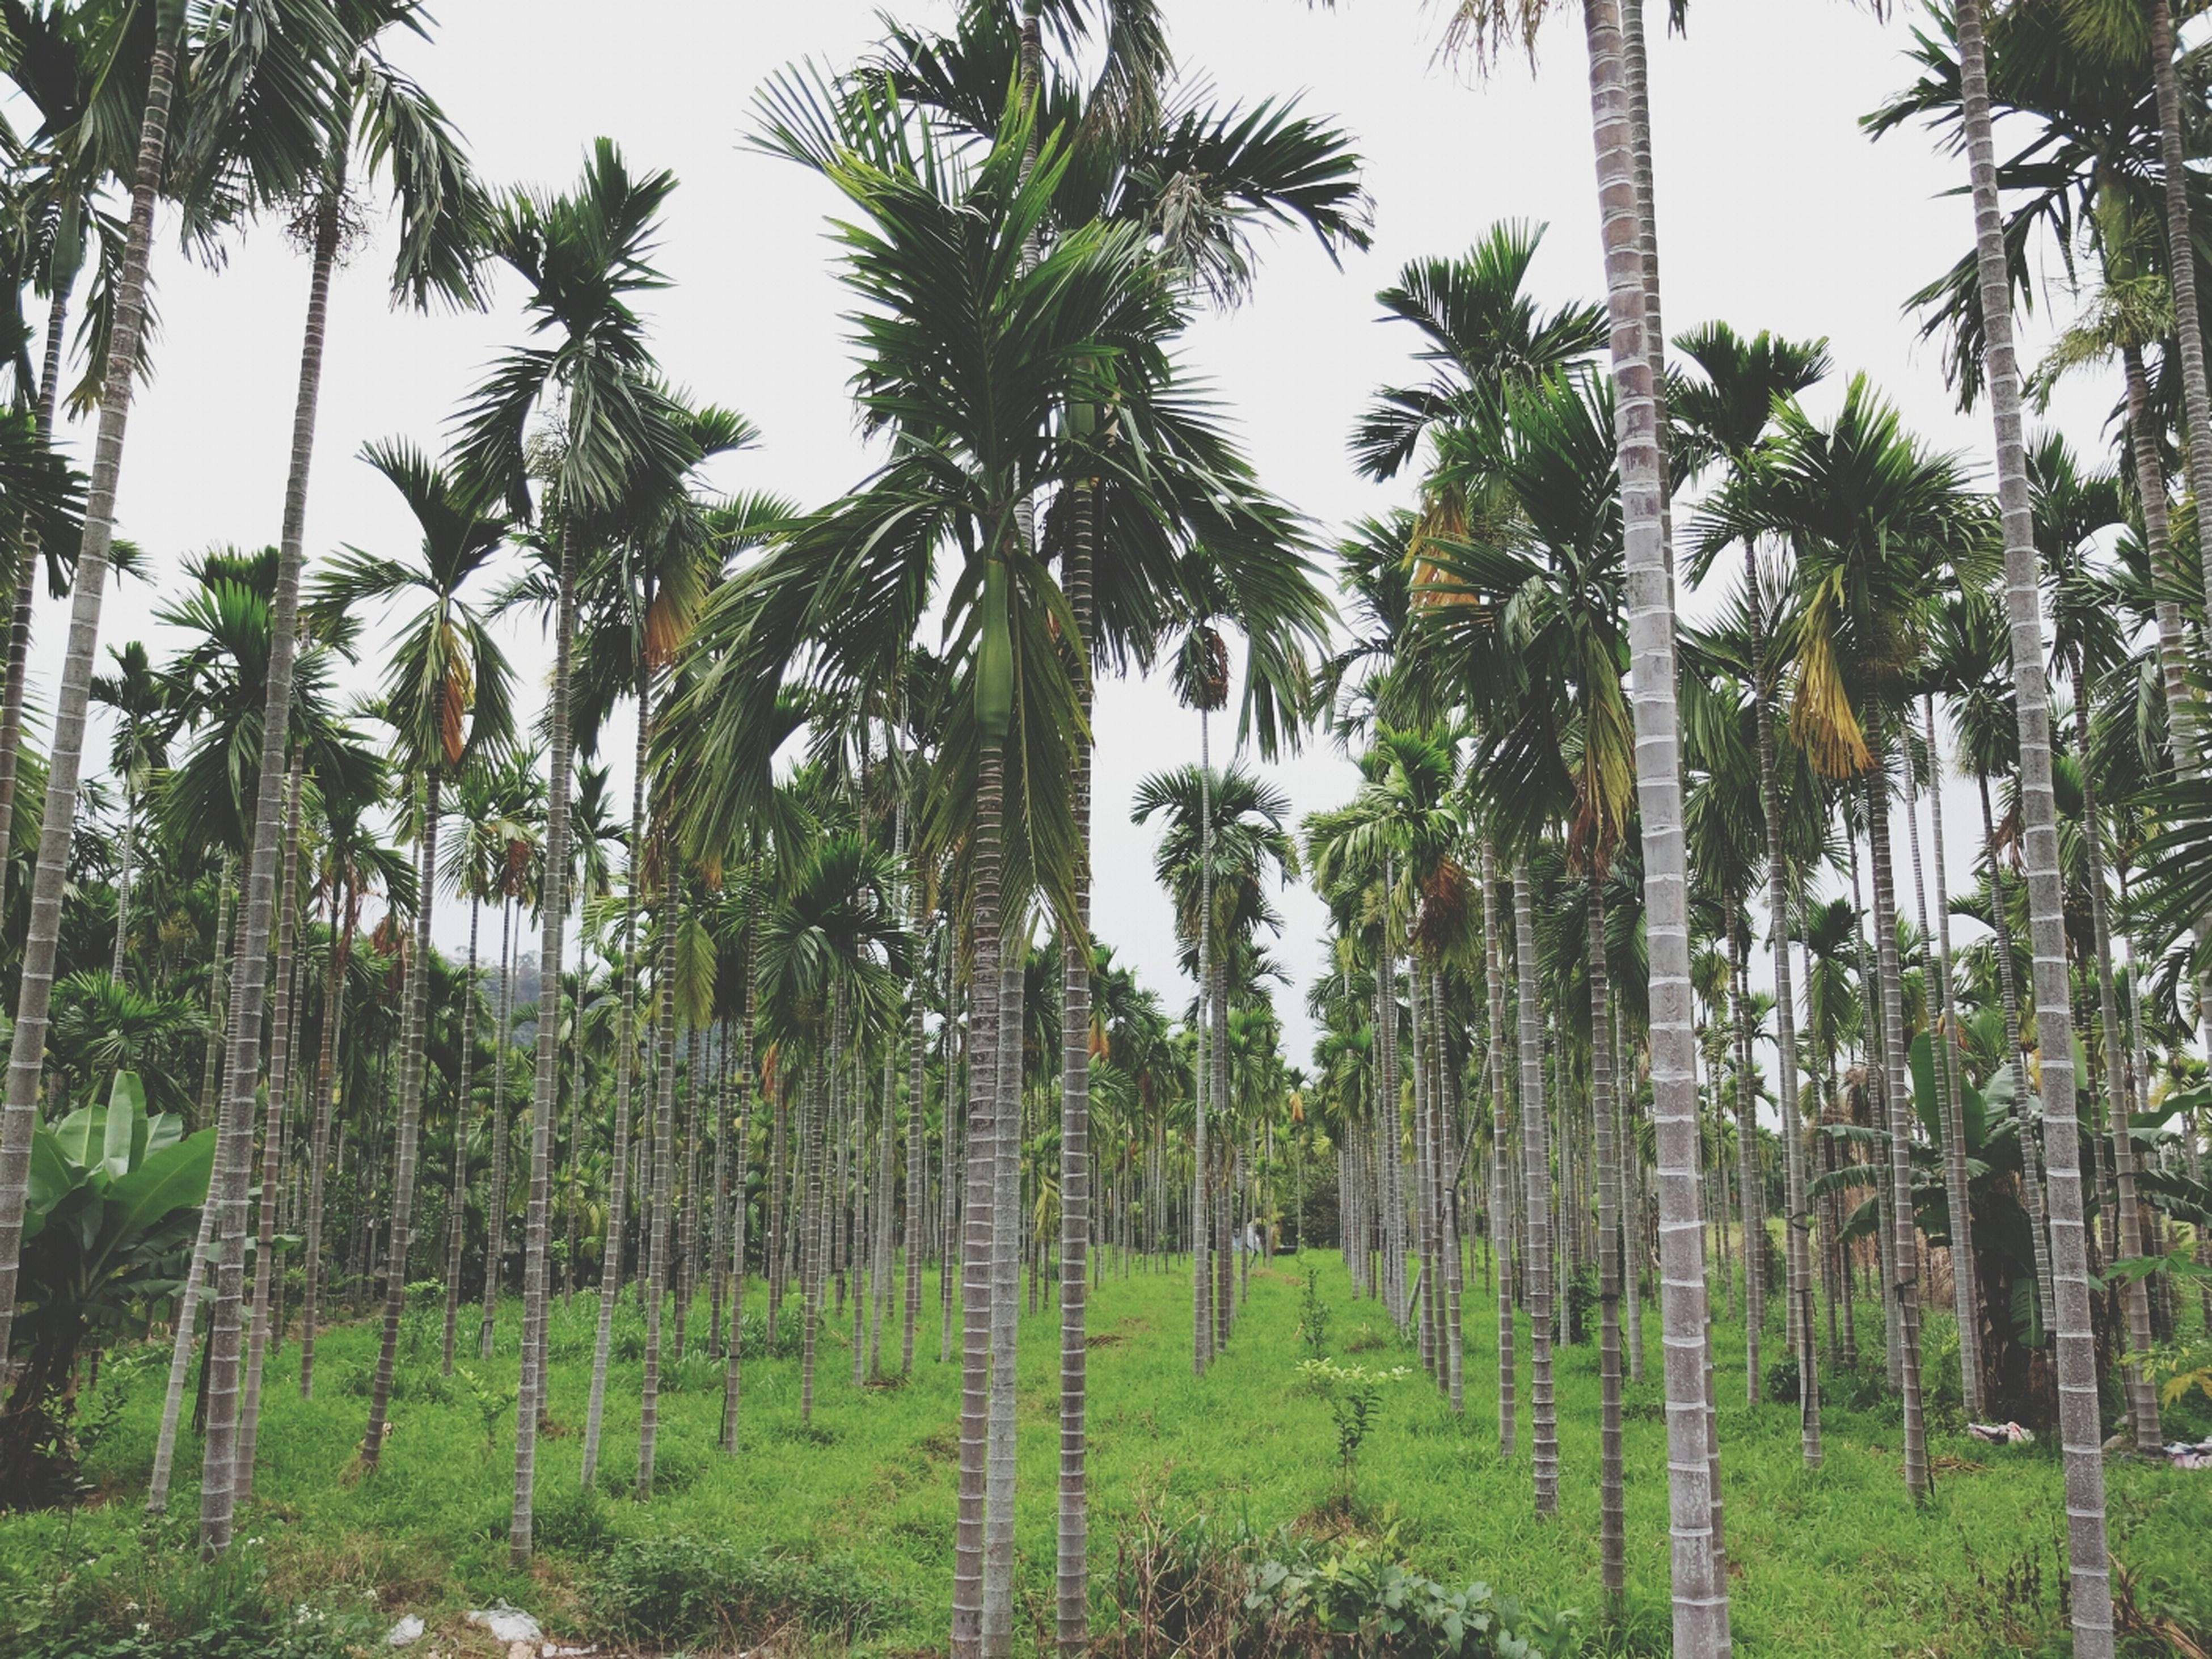 tree, growth, tree trunk, green color, tranquility, palm tree, nature, tranquil scene, beauty in nature, forest, scenics, branch, plant, low angle view, day, sky, clear sky, green, lush foliage, non-urban scene